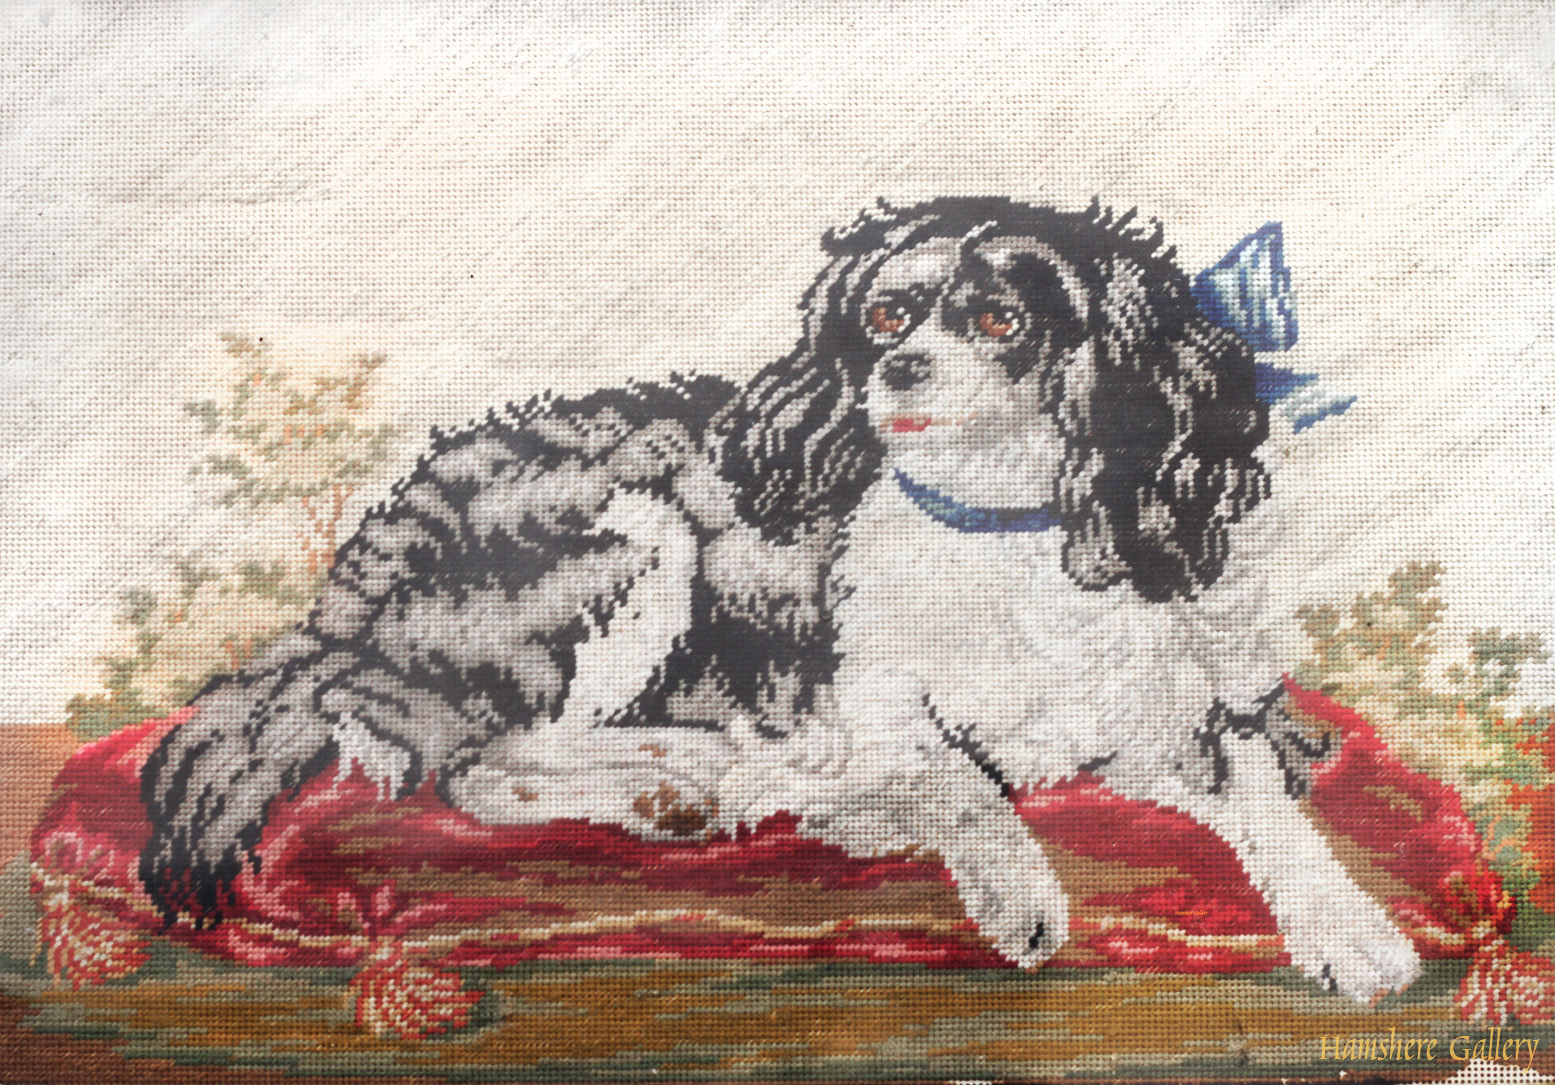 Click to see full size: Mid to late 19th century 'Berlin' needlework / needlepoint / tapestry of a tricolour King Charles Cavalier Spaniel- Mid to late 19th century 'Berlin' needlework / needlepoint / tapestry of a tricolour King Charles Cavalier Spaniel